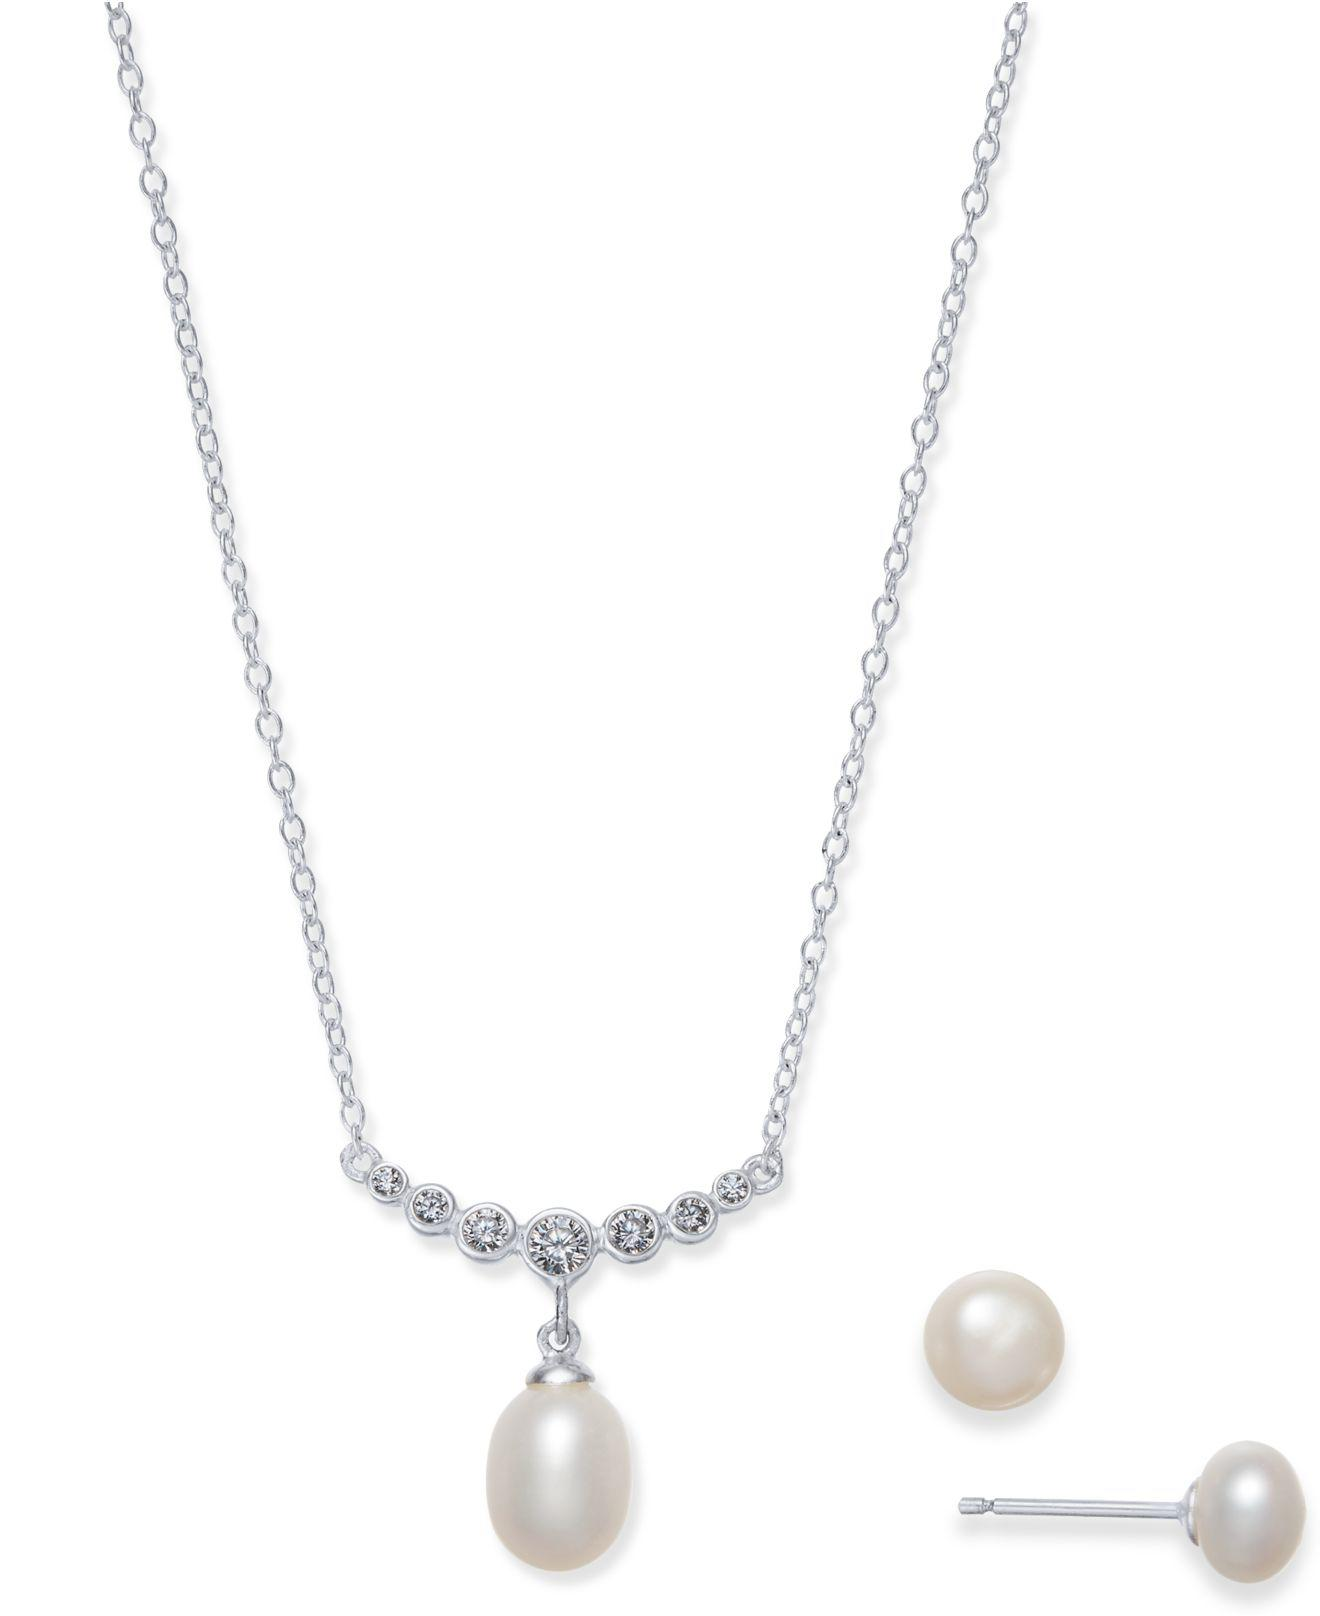 Fine Jewelry Cultured Freshwater Pearl & Lab Created Cubic Zirconia Sterling Silver Pendant Necklace BkrsM